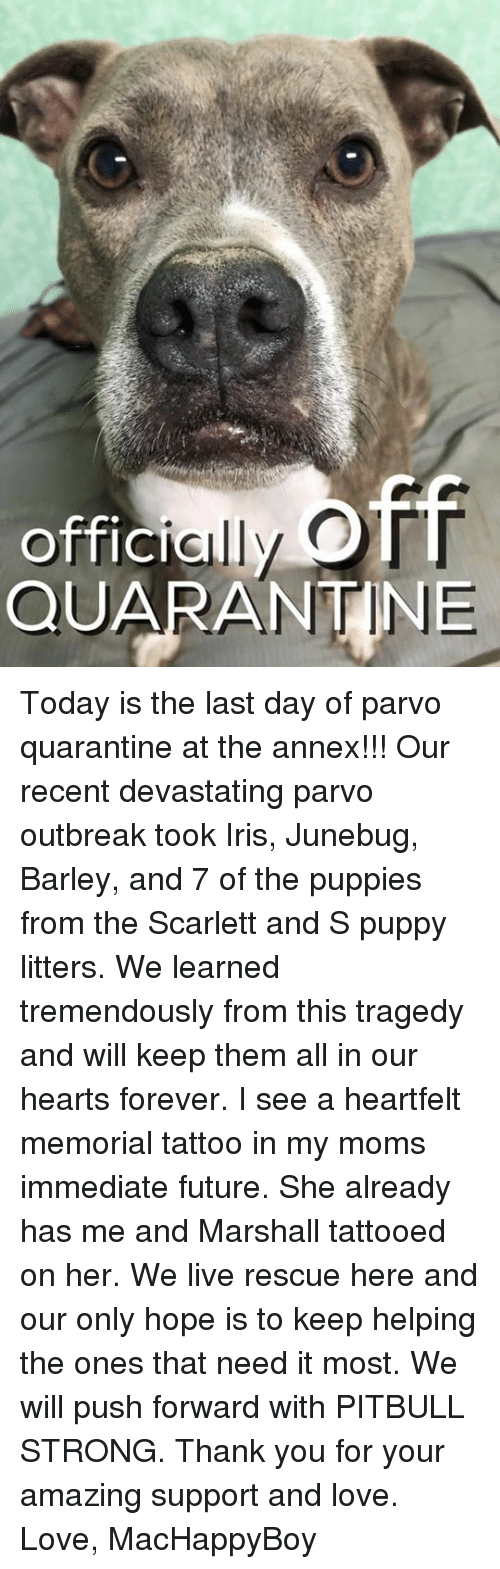 Memes, 🤖, and Push: OTT  offici  QUARANTINE Today is the last day of parvo quarantine at the annex!!! Our recent devastating parvo outbreak took Iris, Junebug, Barley, and 7 of the puppies from the Scarlett and S puppy litters. We learned tremendously from this tragedy and will keep them all in our hearts forever. I see a heartfelt memorial tattoo in my moms immediate future. She already has me and Marshall tattooed on her. We live rescue here and our only hope is to keep helping the ones that need it most. We will push forward with PITBULL STRONG. Thank you for your amazing support and love.   Love, MacHappyBoy